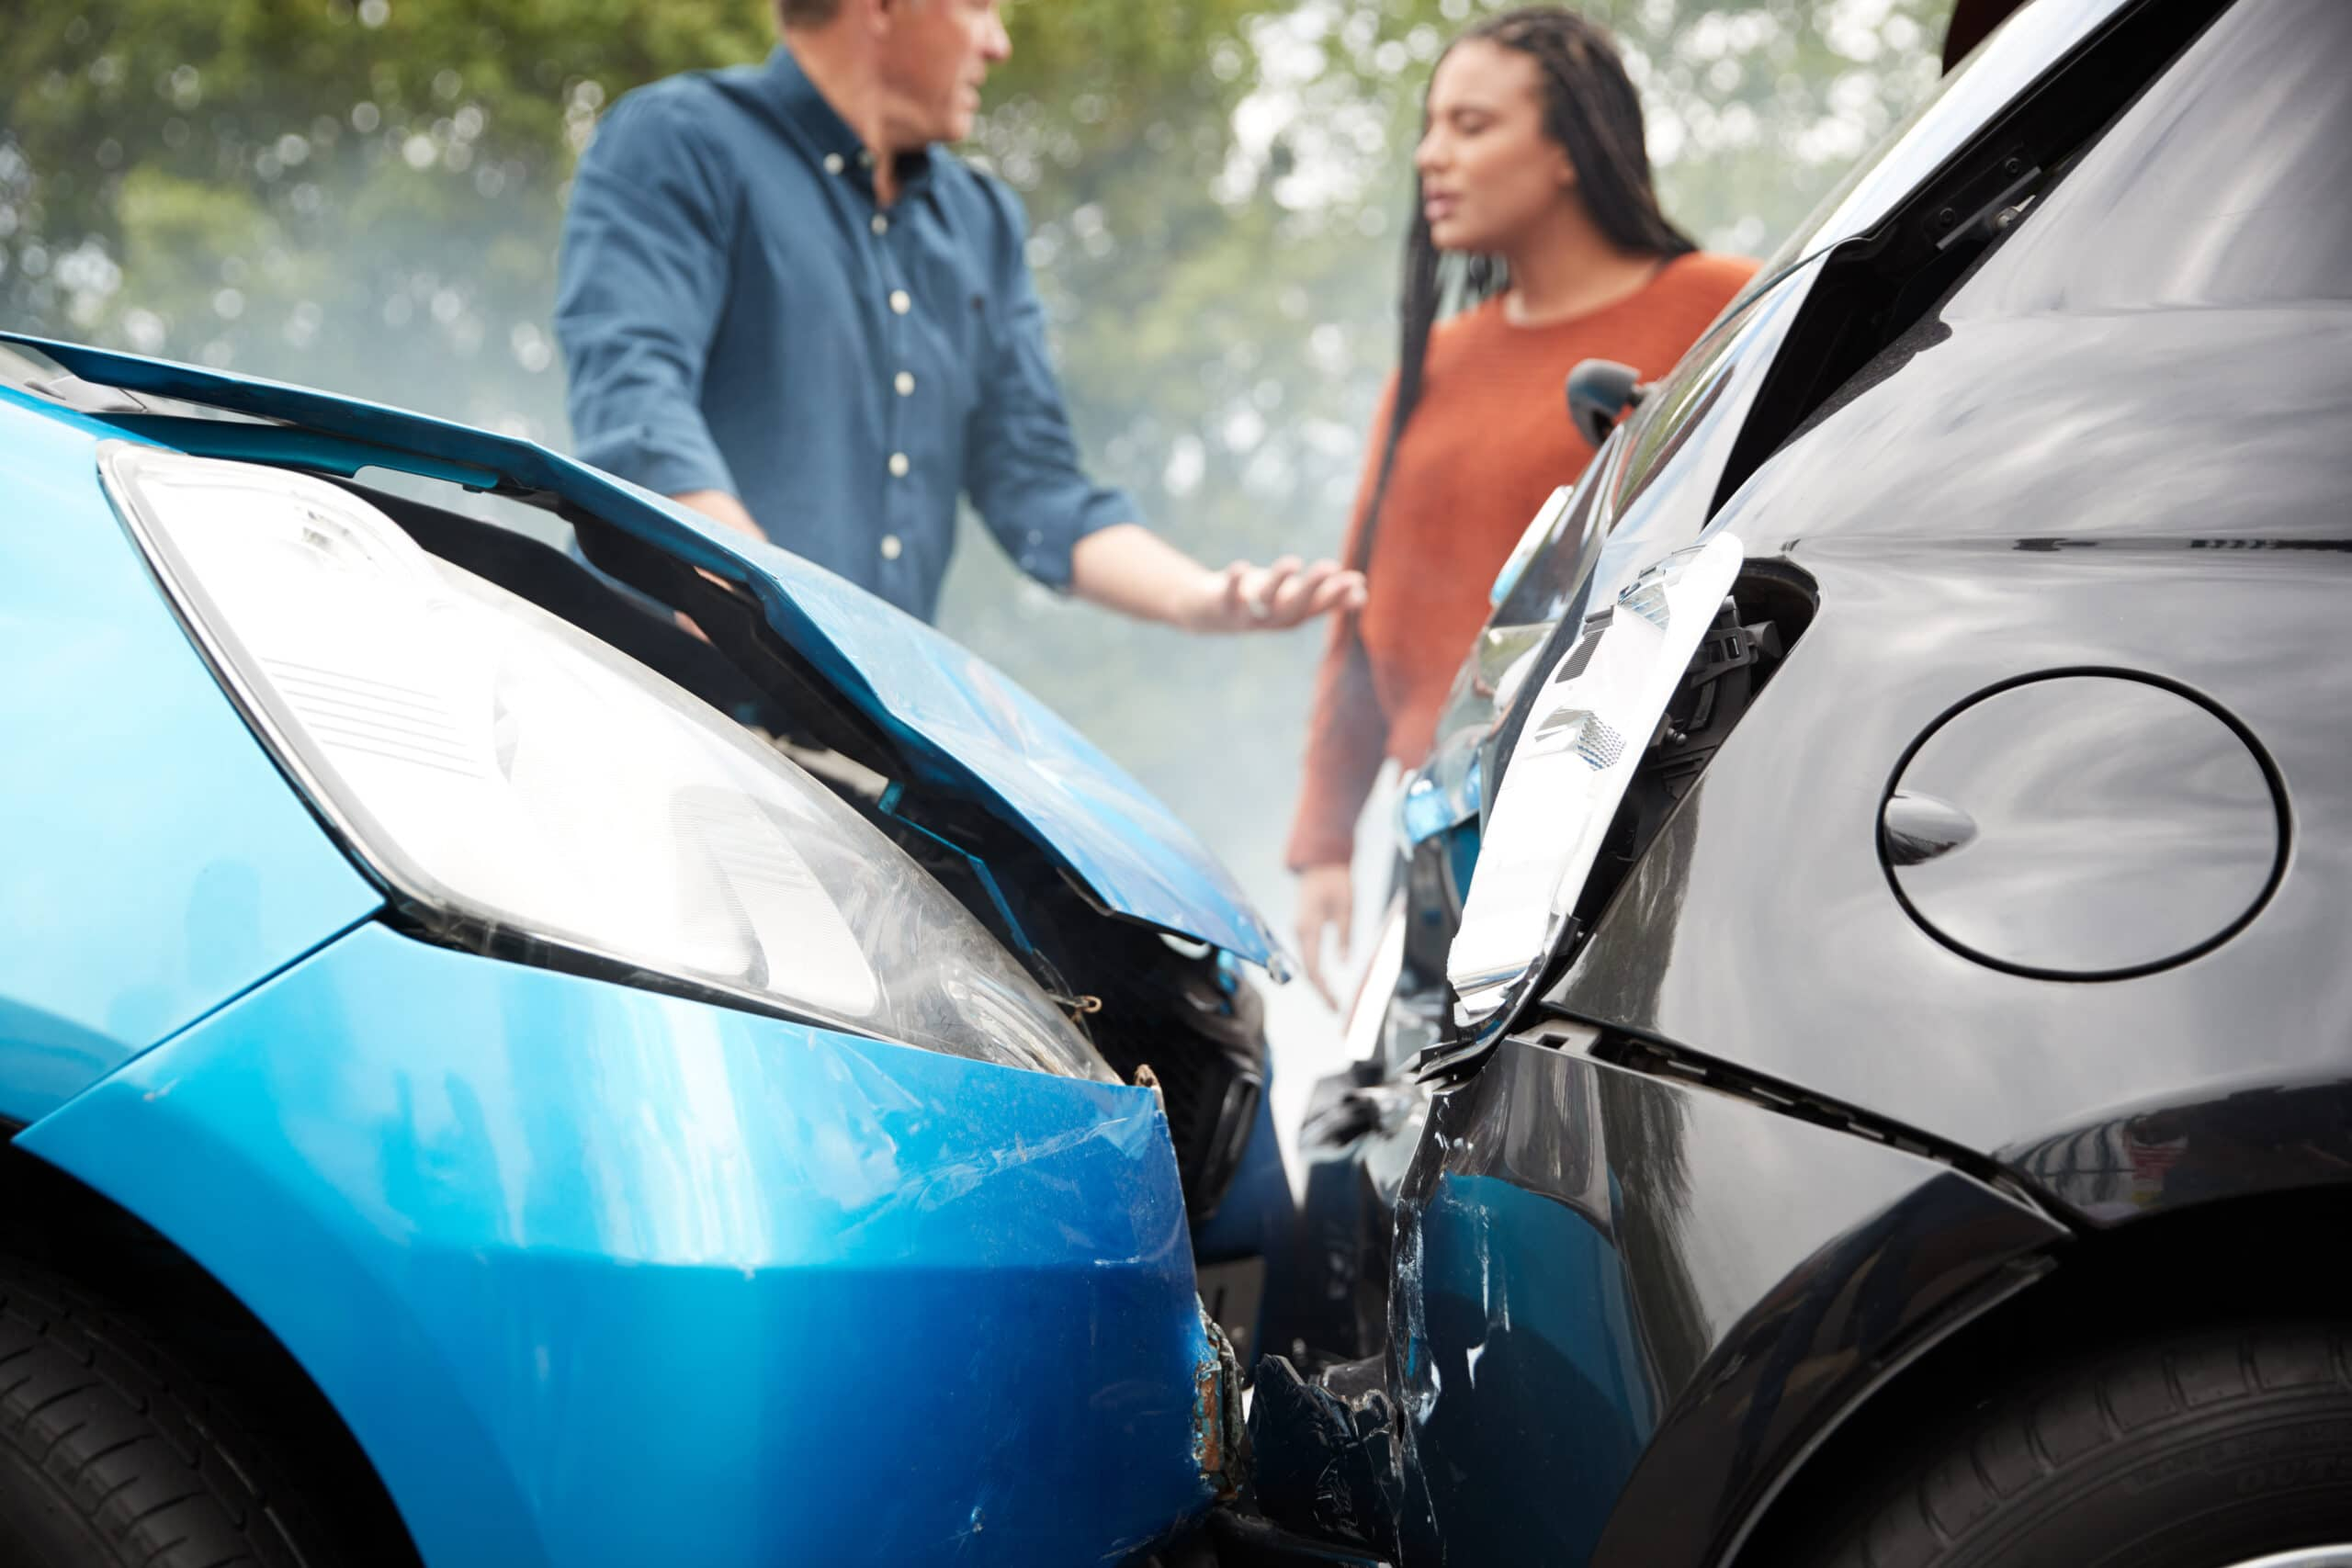 When to lawyer up after a car accident blog image